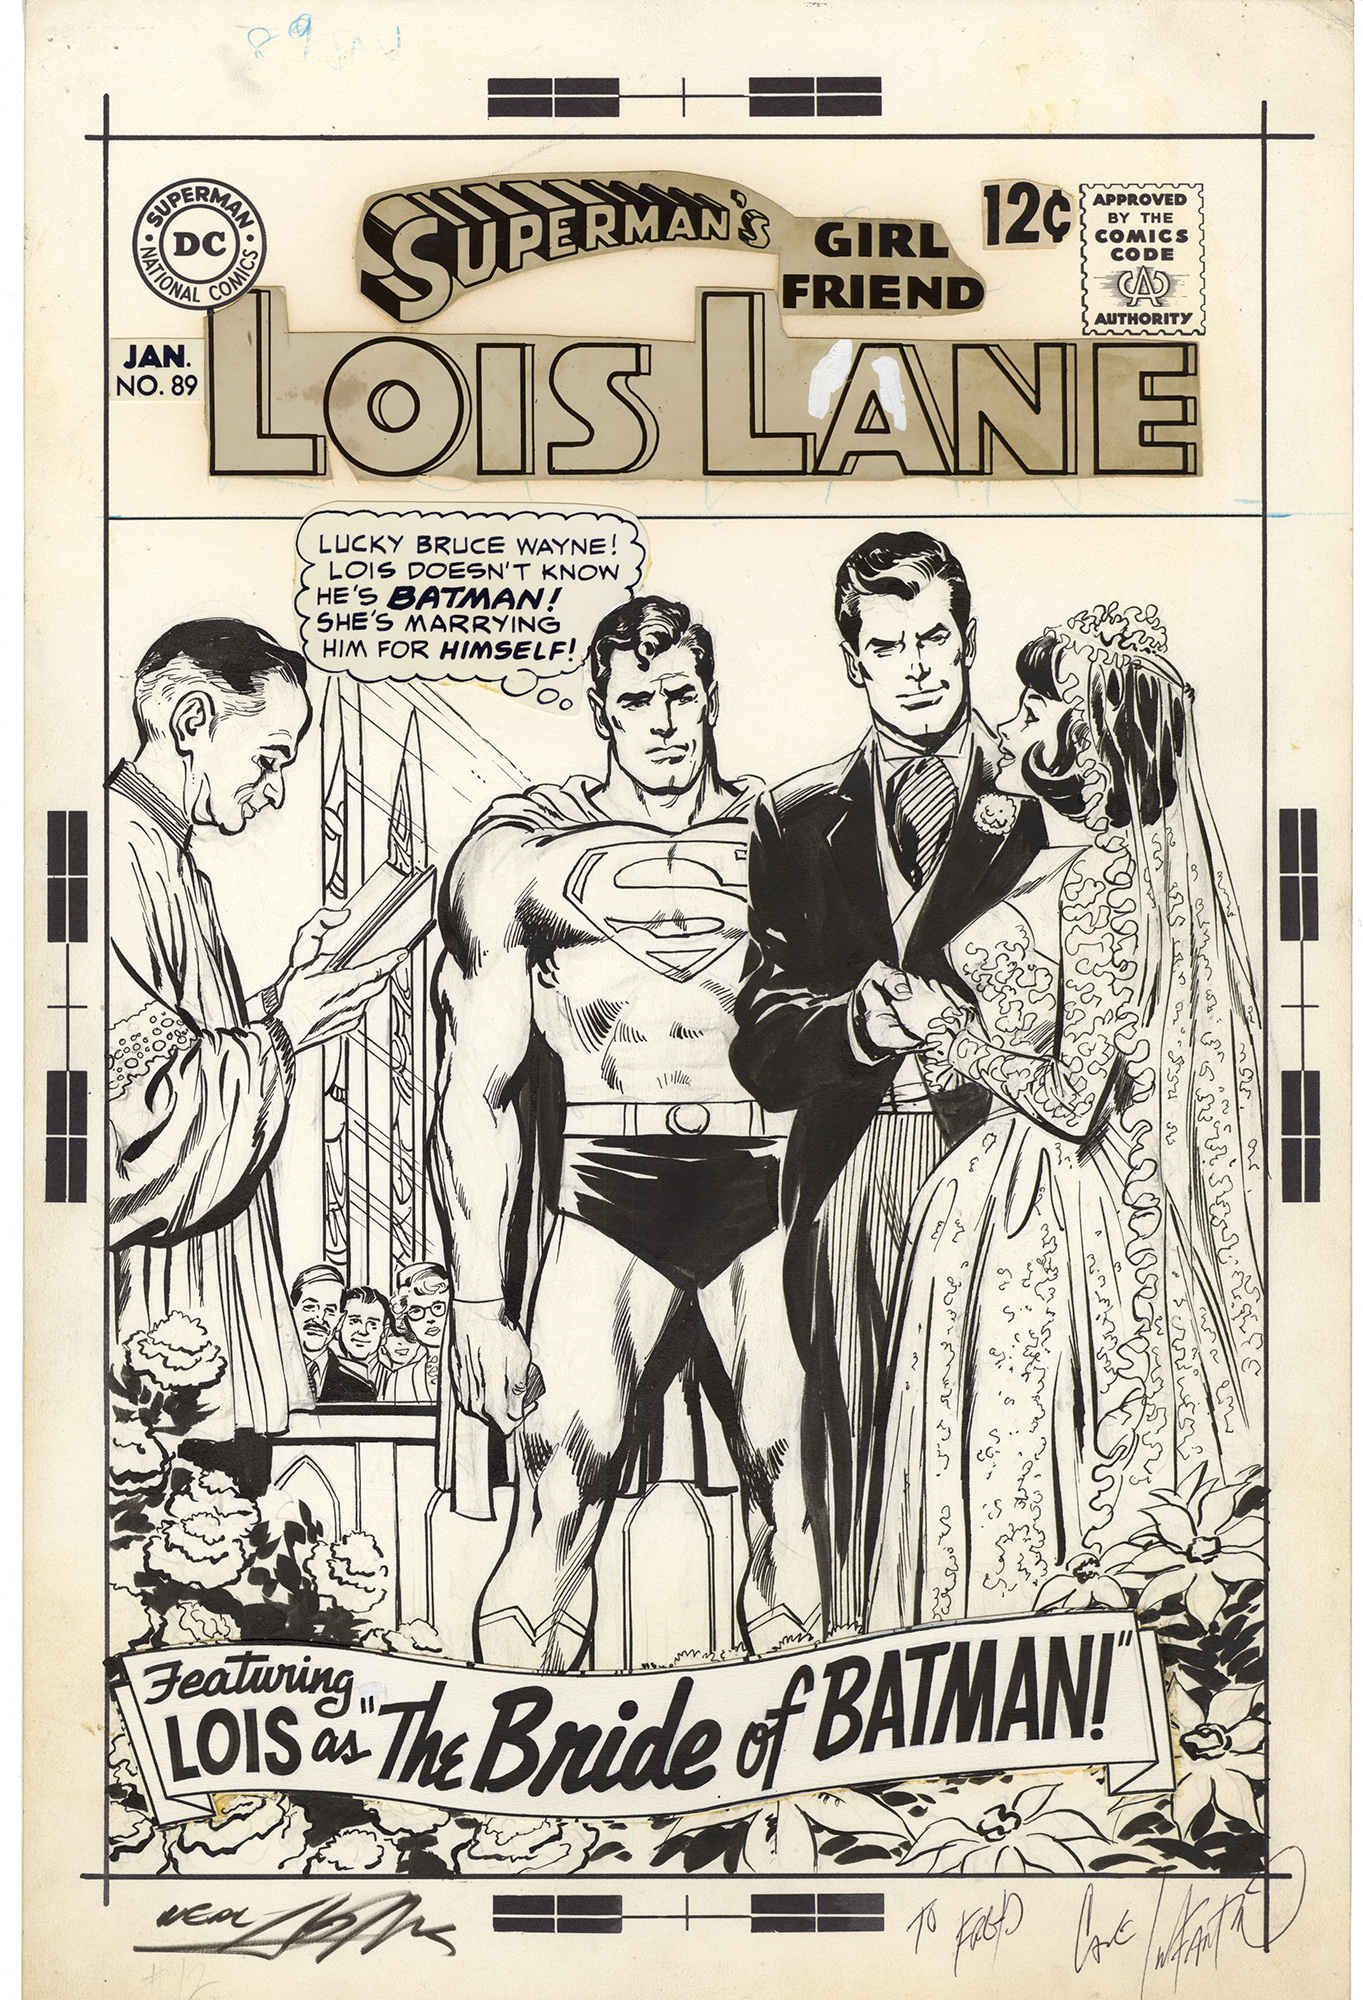 Superman's Girl Friend Lois Lane #89 Cover (Neal Adams)